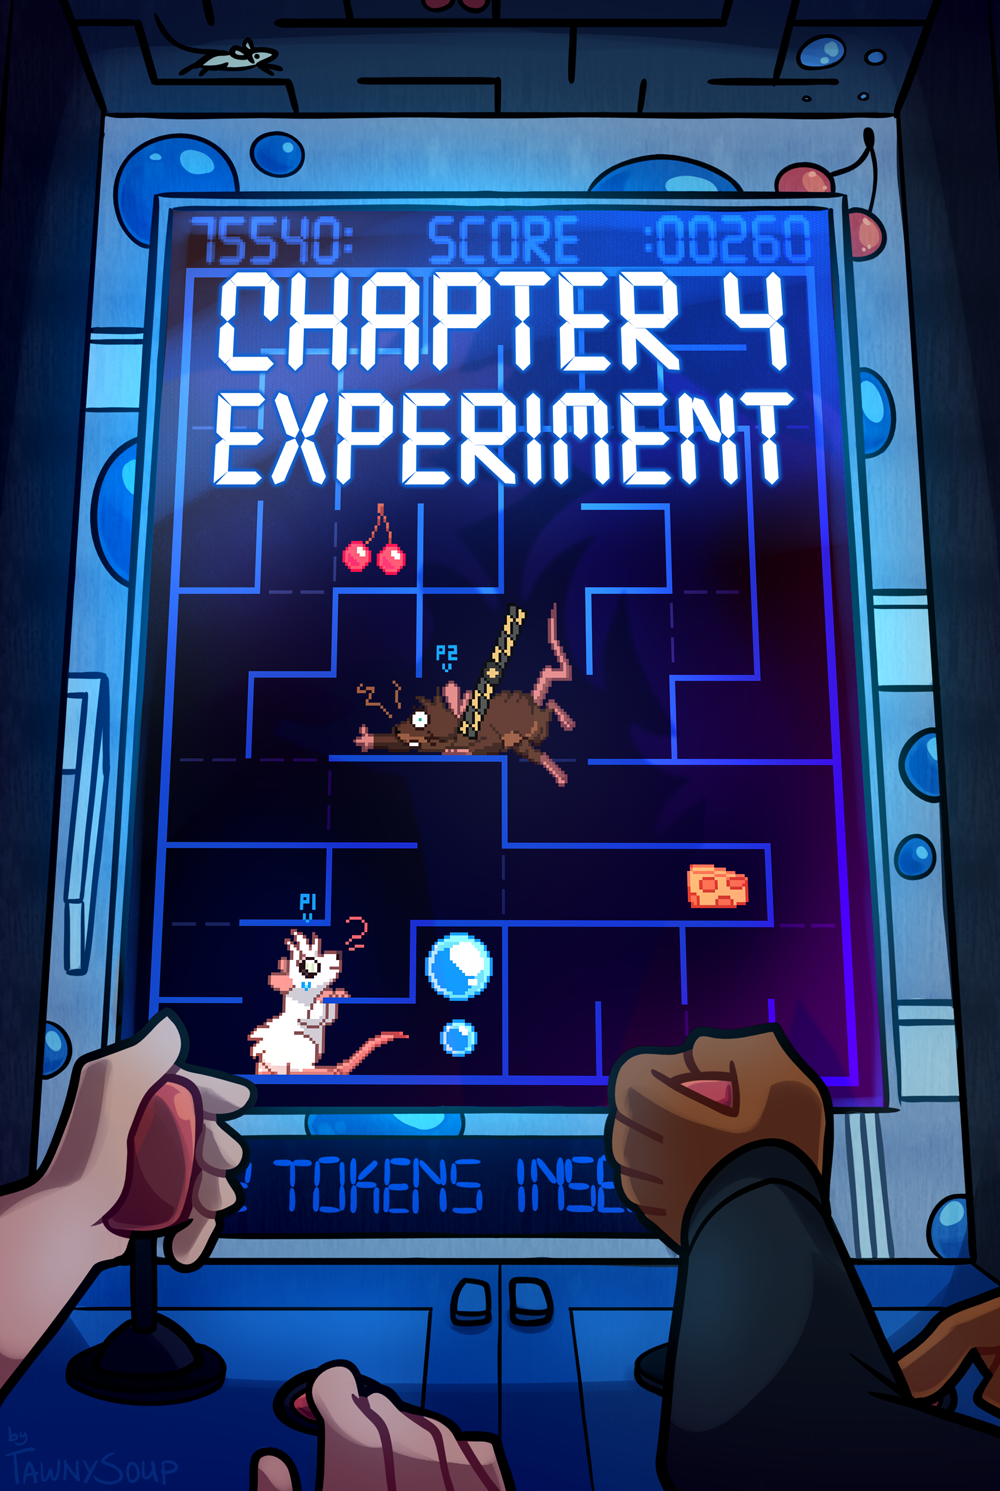 Chapter 4: Experiment